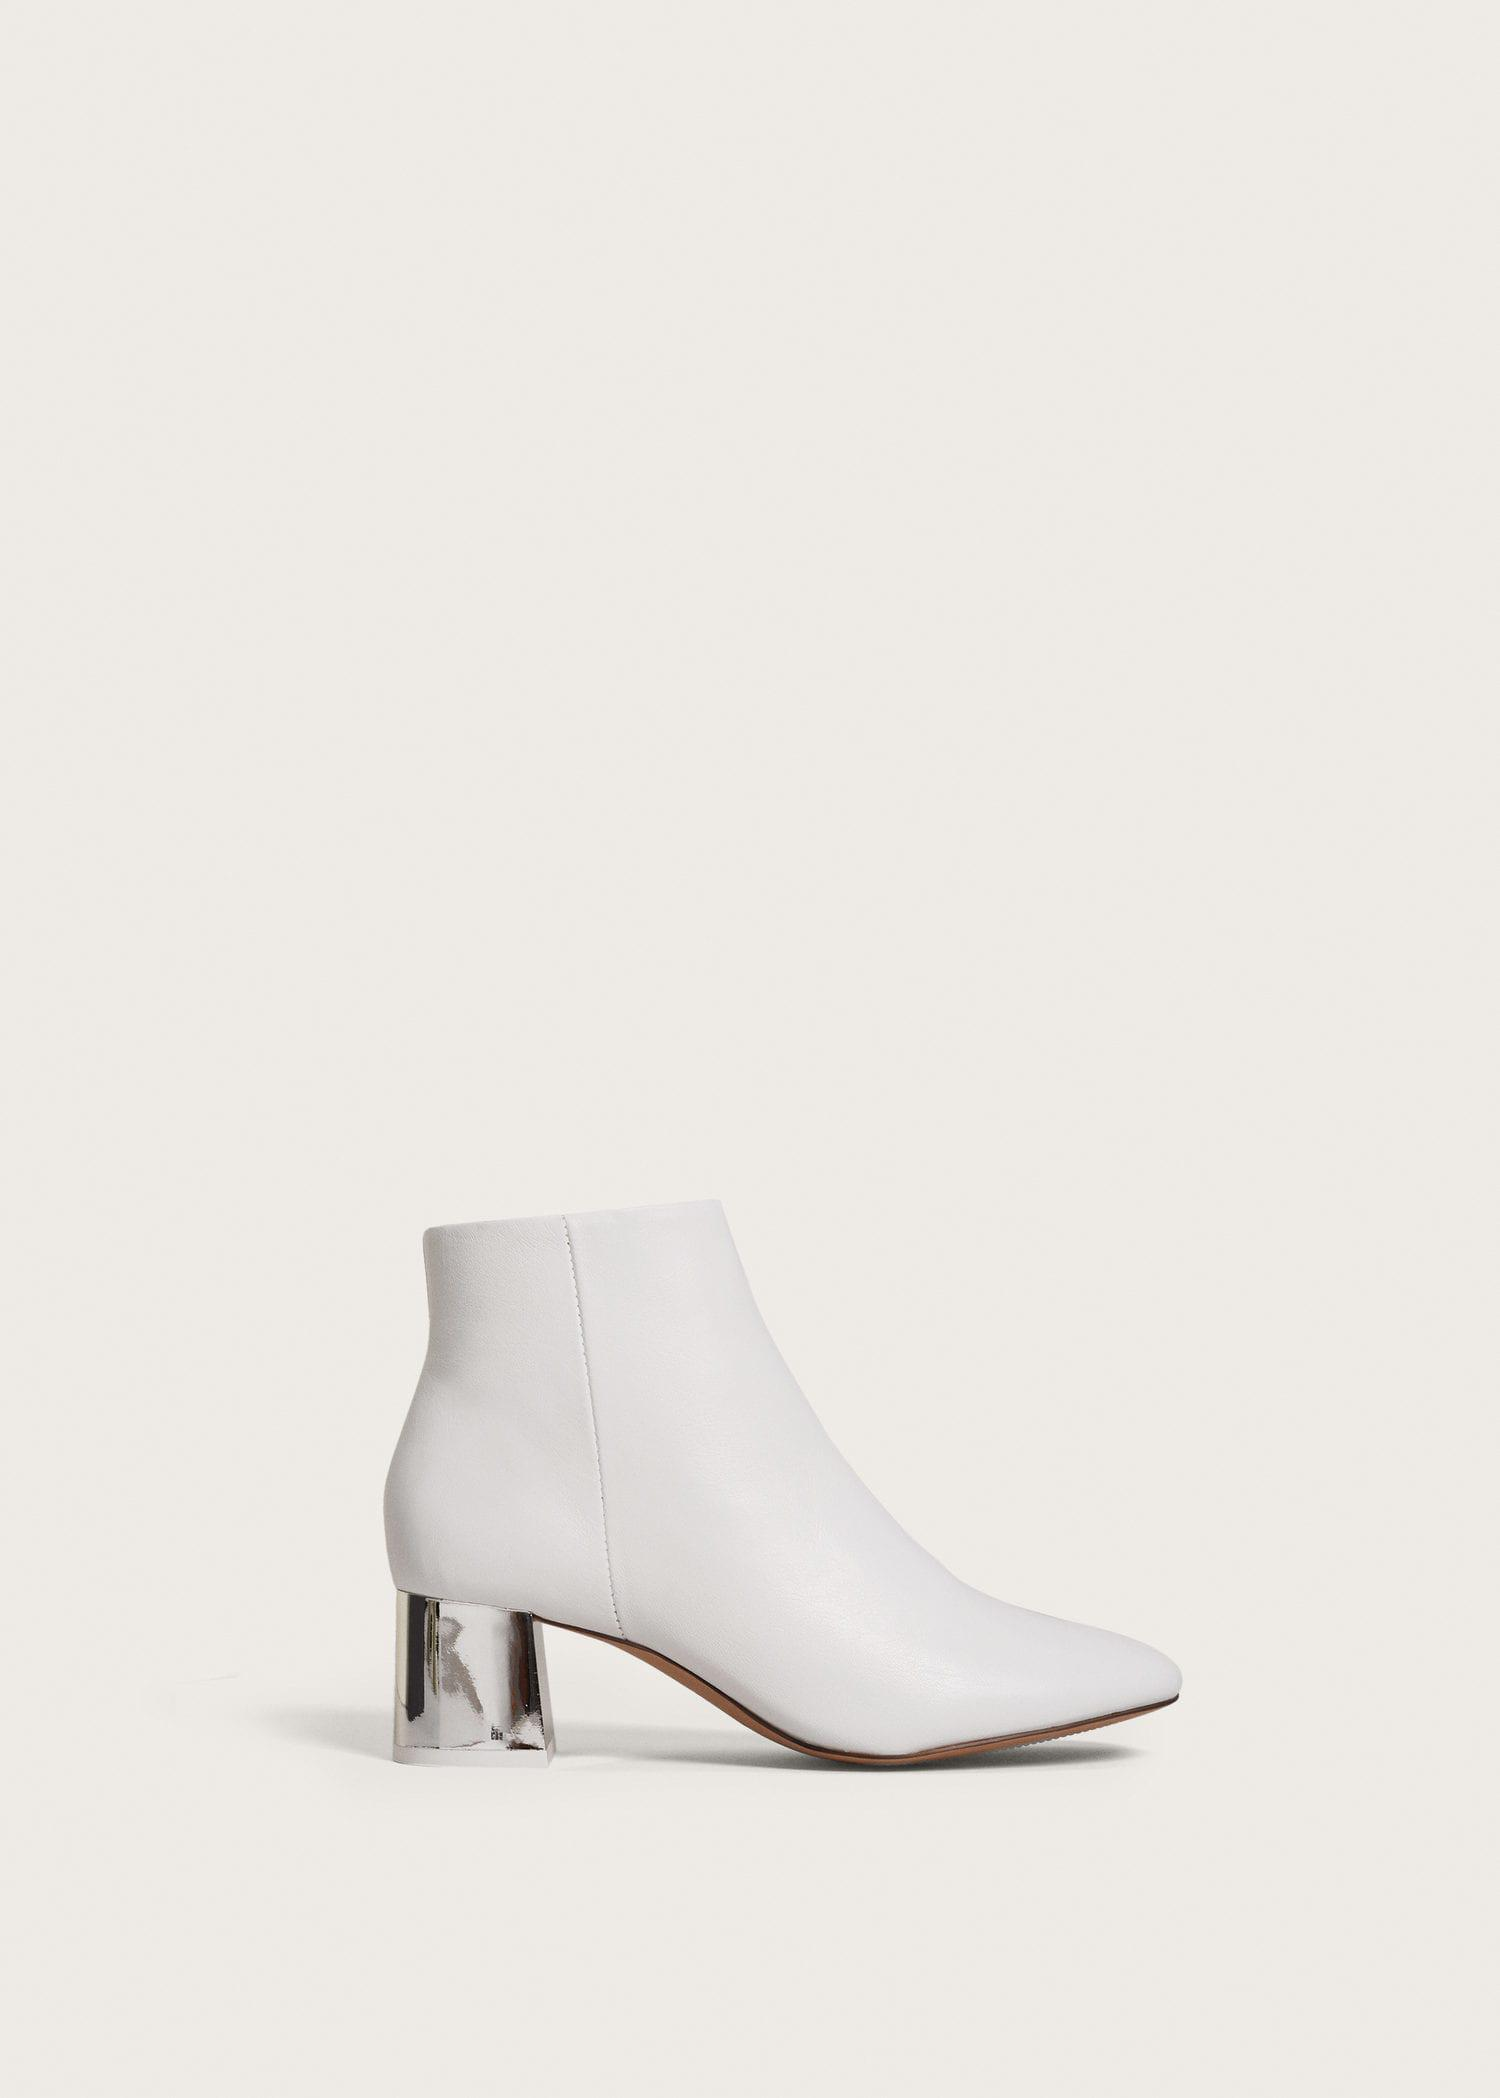 ad1256d6172 Violeta by Mango White Metallic Heel Leather Ankle Boots